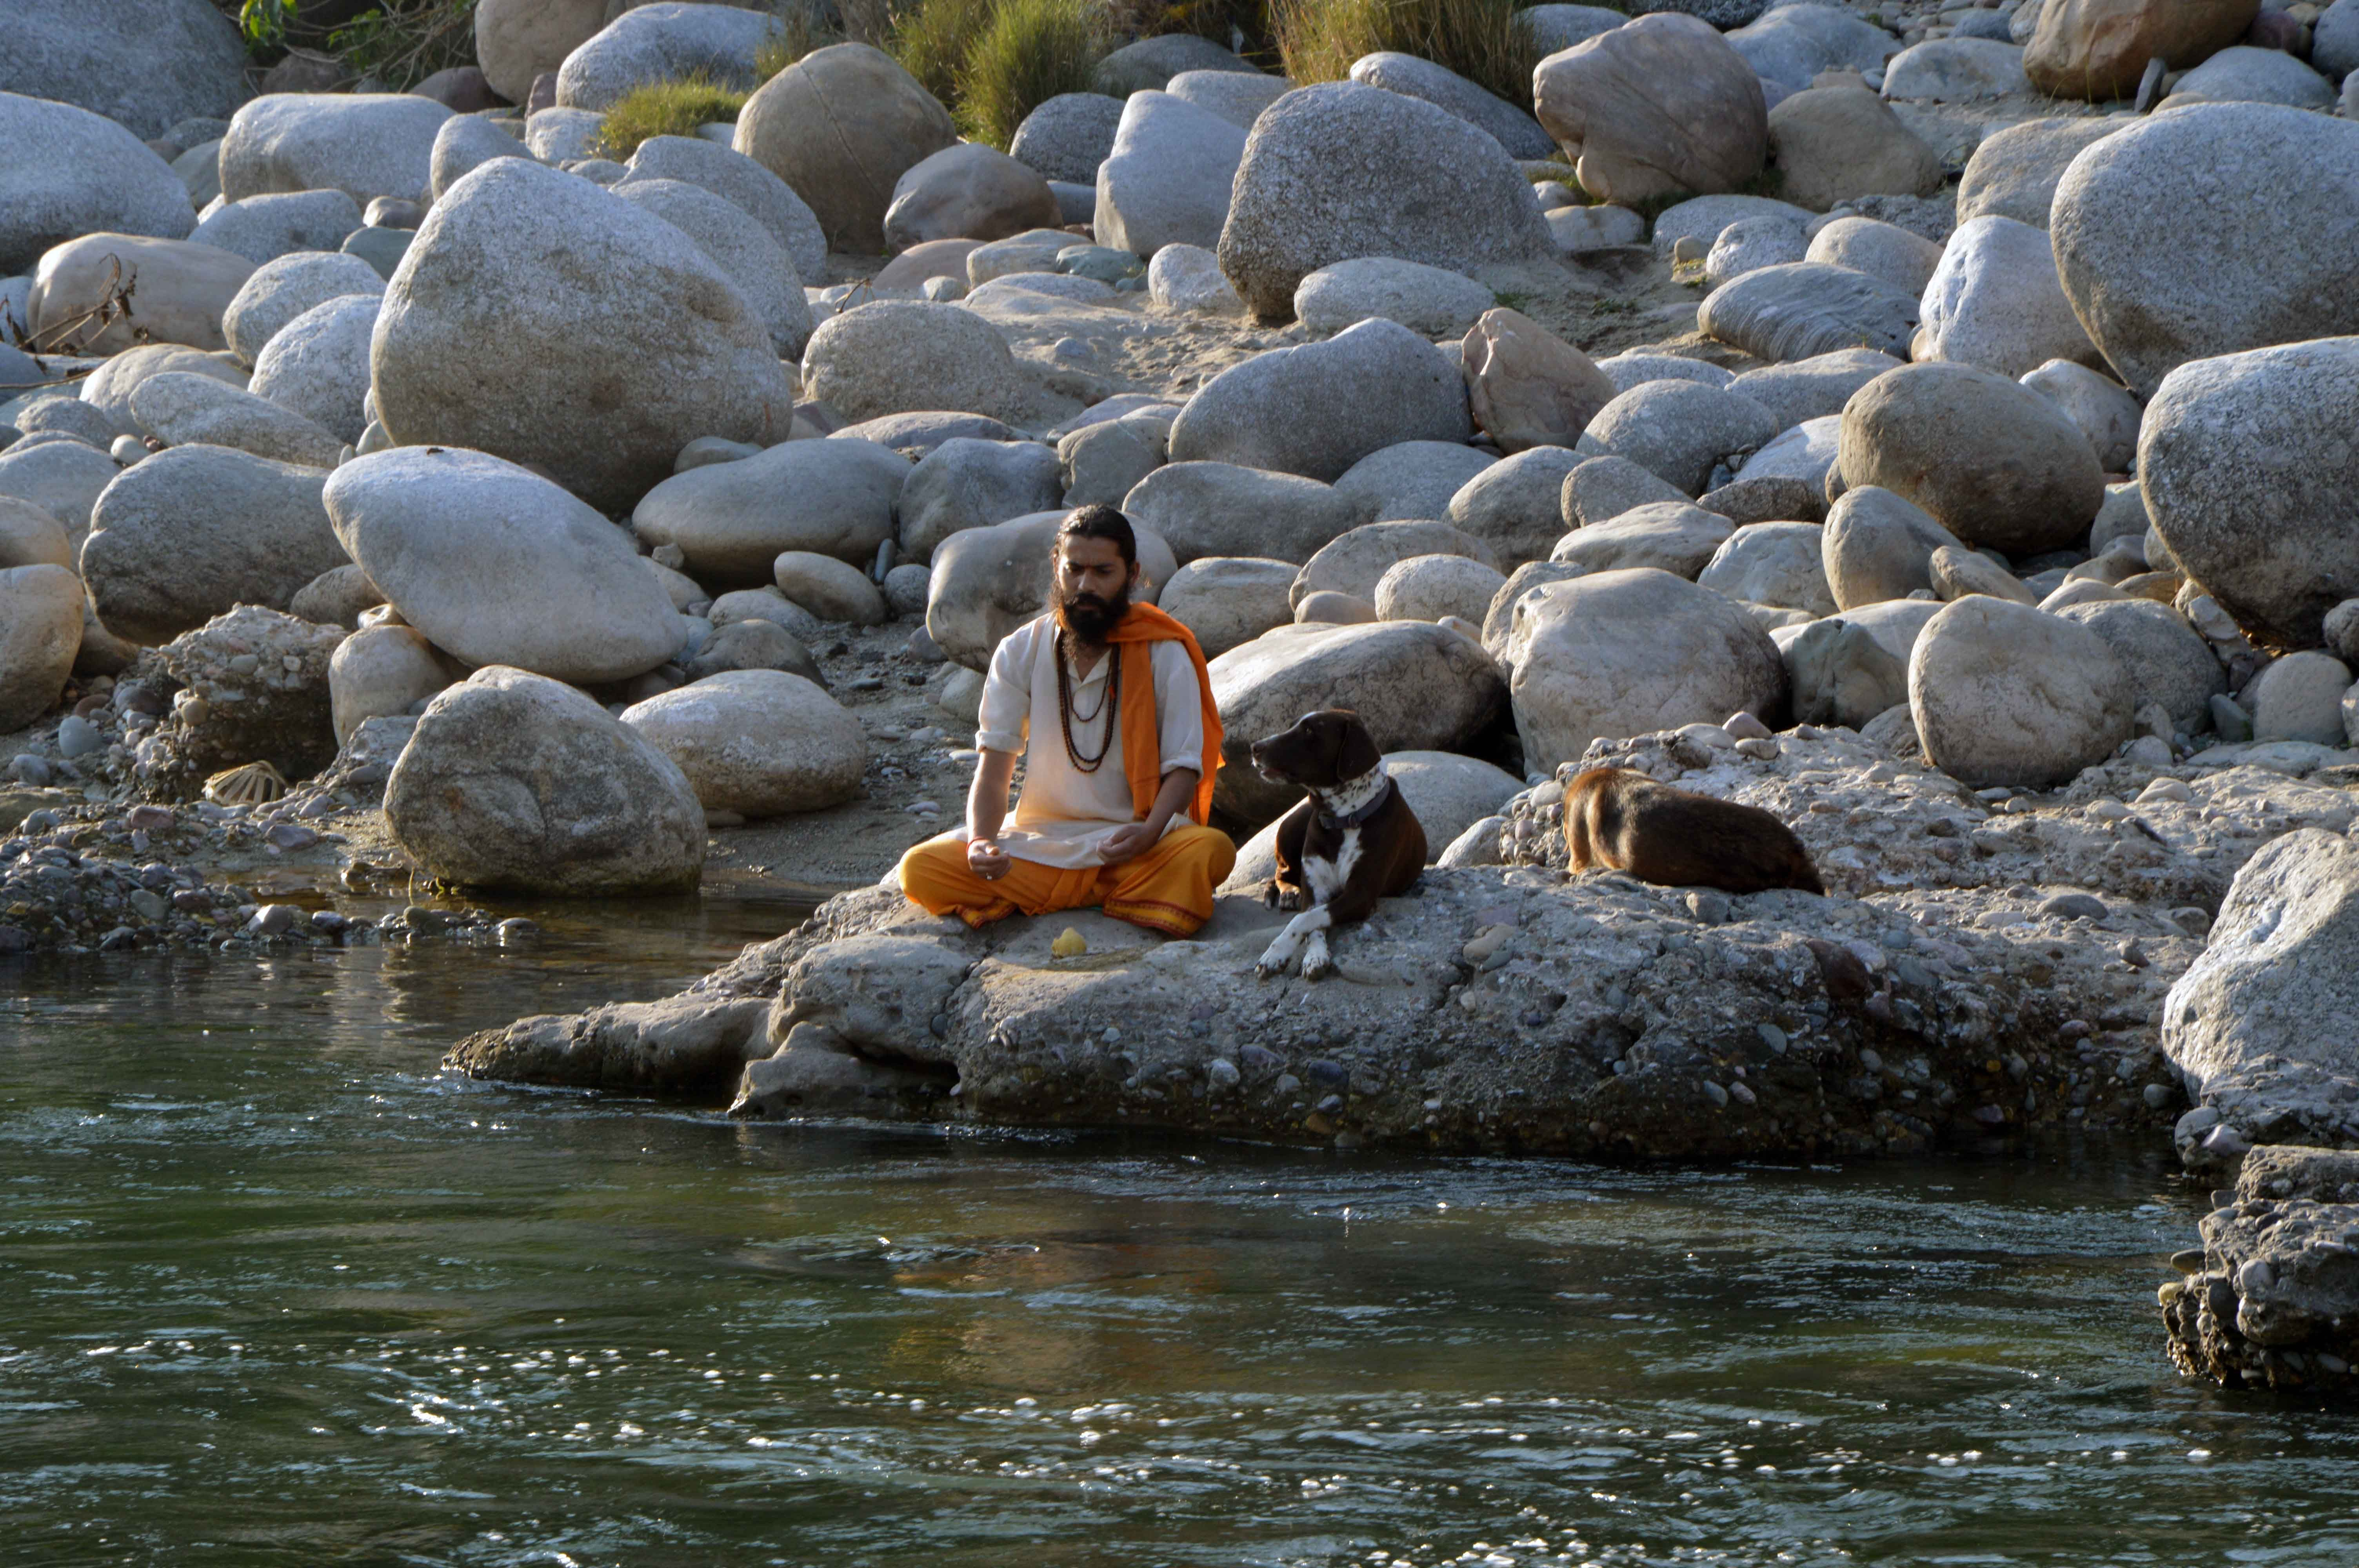 the Holy Man (Baba) at the Kangra Valley, meditating besides Mother Ganga..one of the shots from 'Arjun's debut Music video---Beer Pongd!